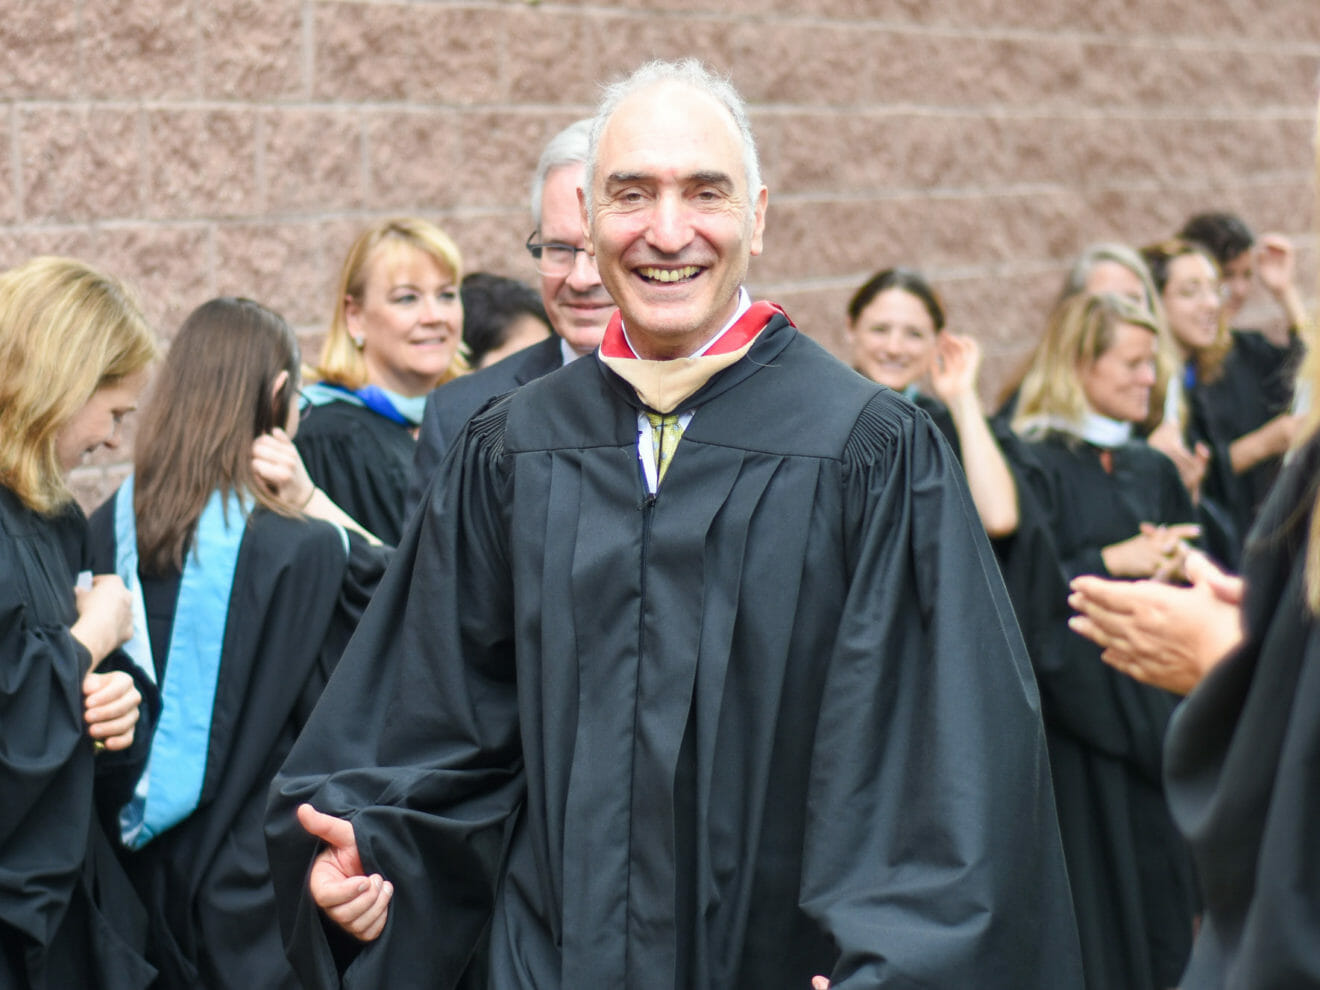 Mike Saxenian, Head of McLean School, in robes for commencement